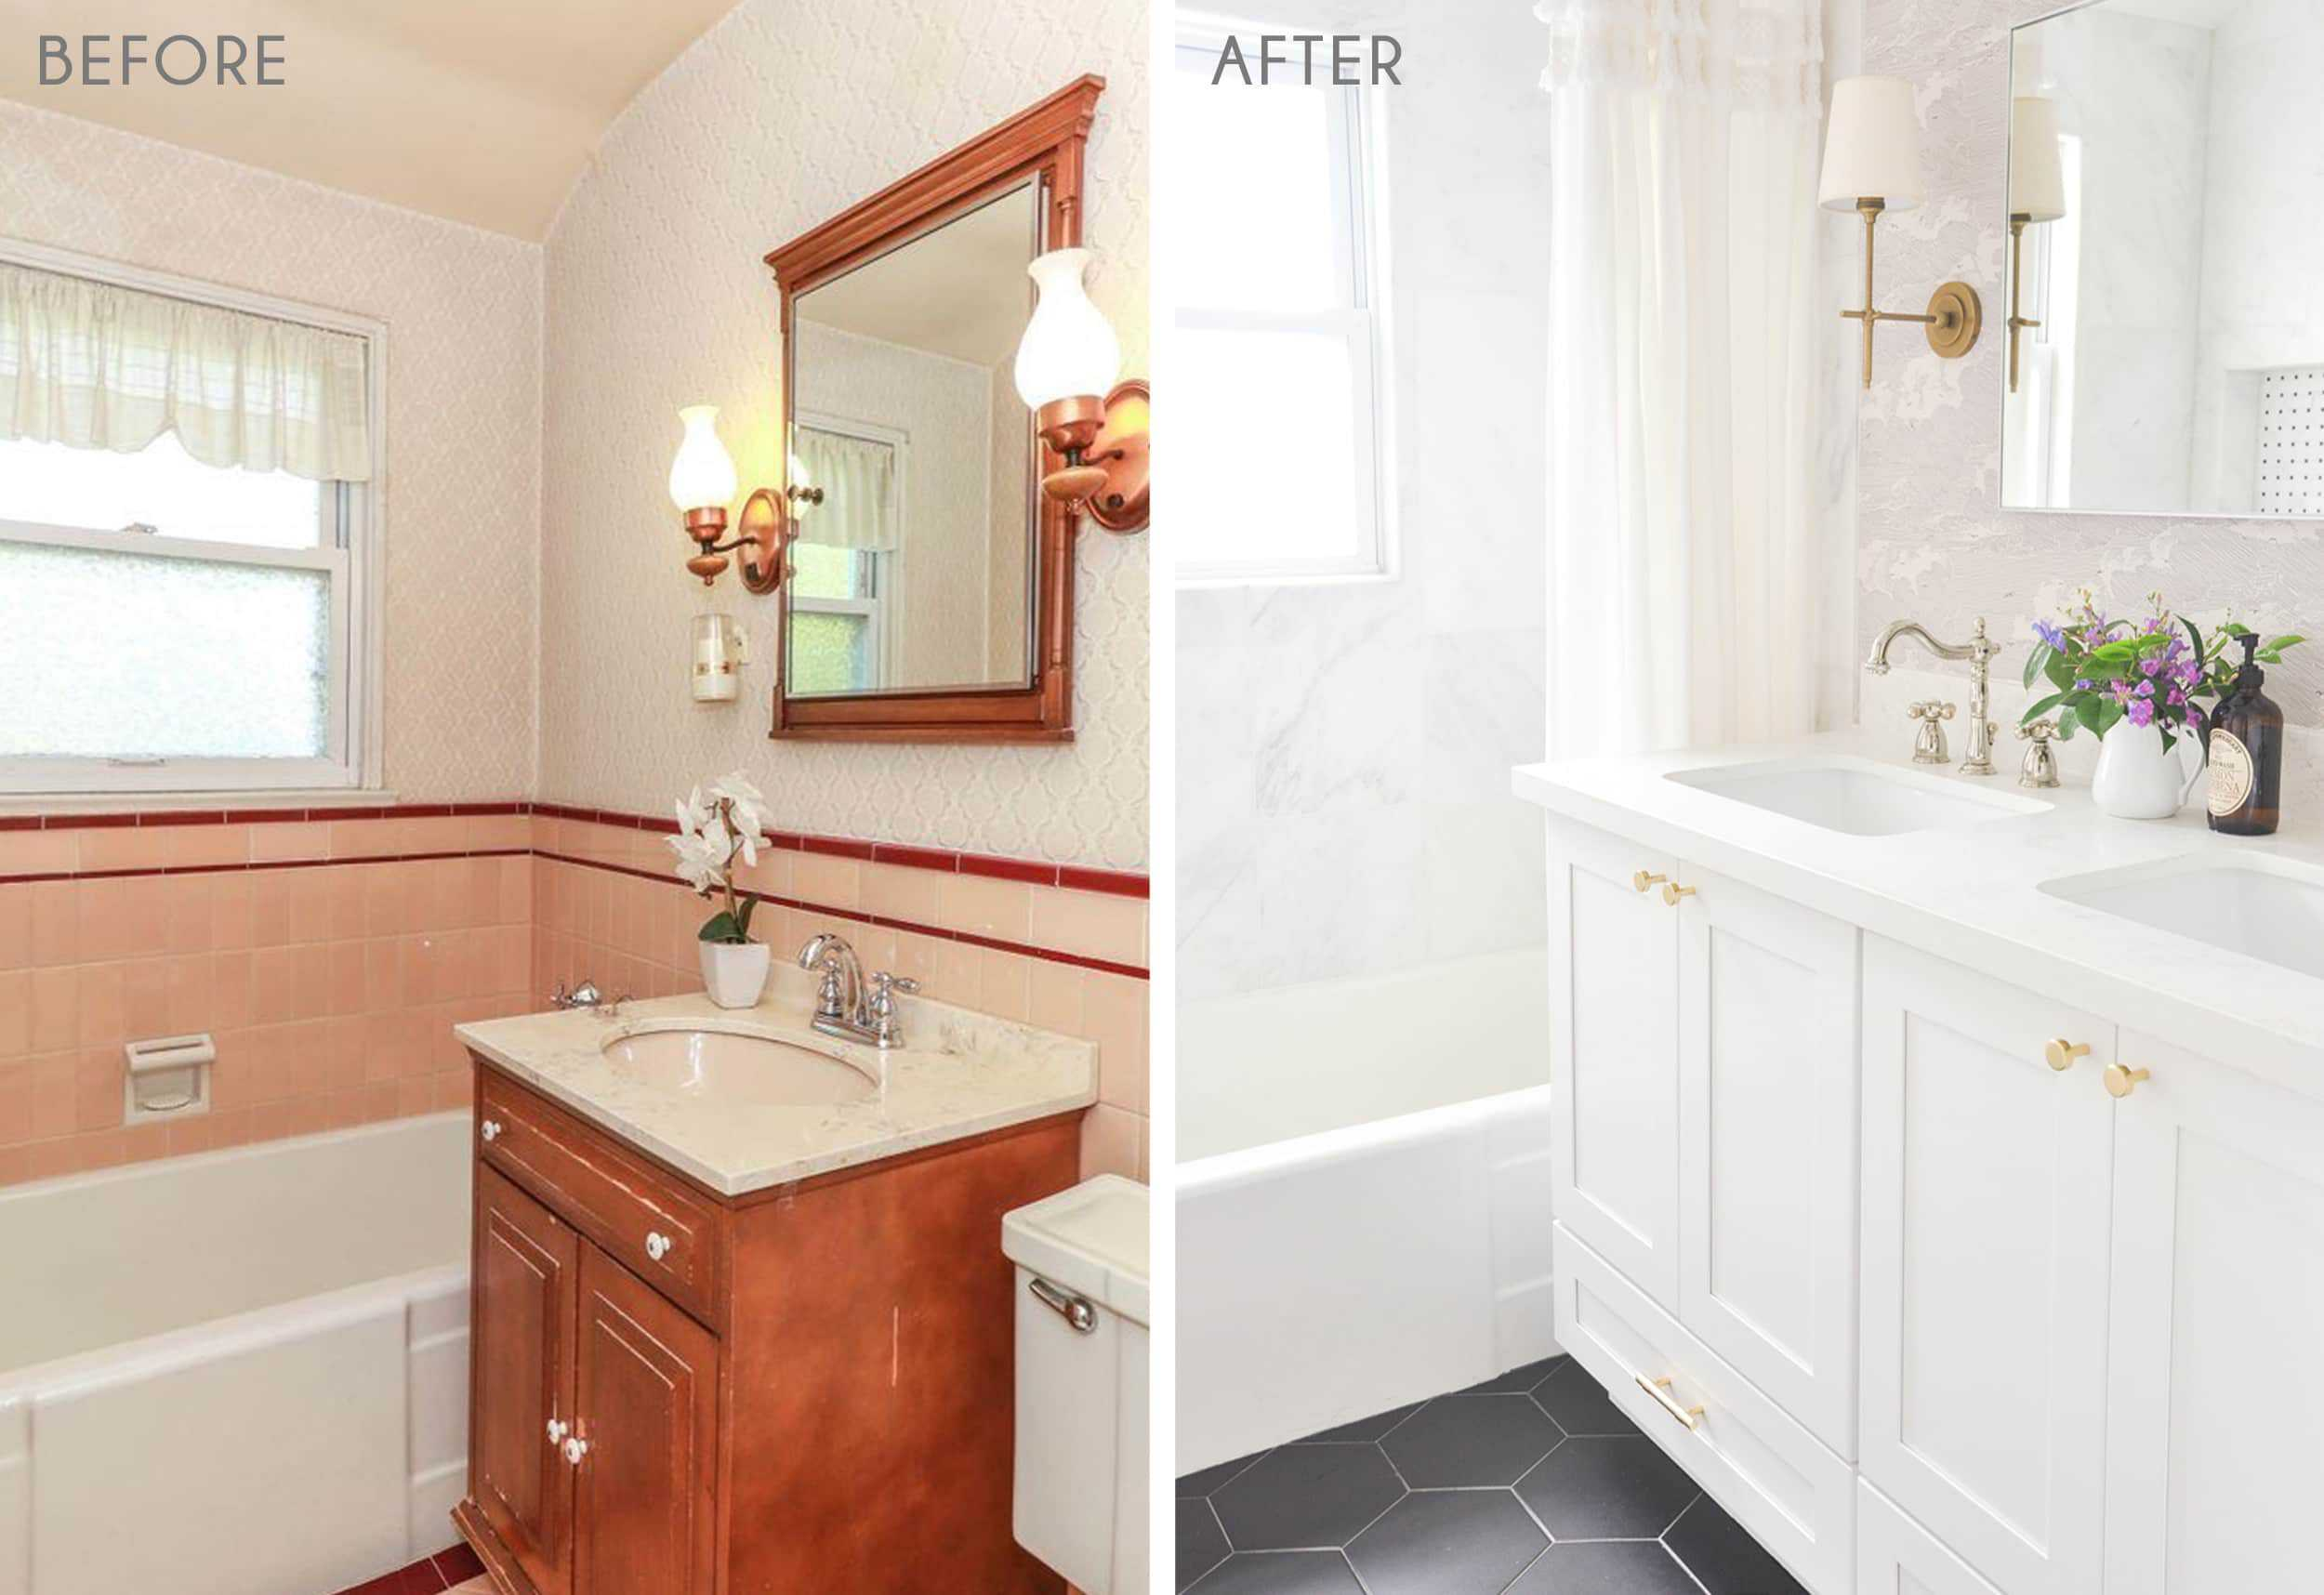 12 Diy Reader Bathroom Renovations Full Of Budget Friendly Tips Diys Real Cost And Timing Emily Henderson